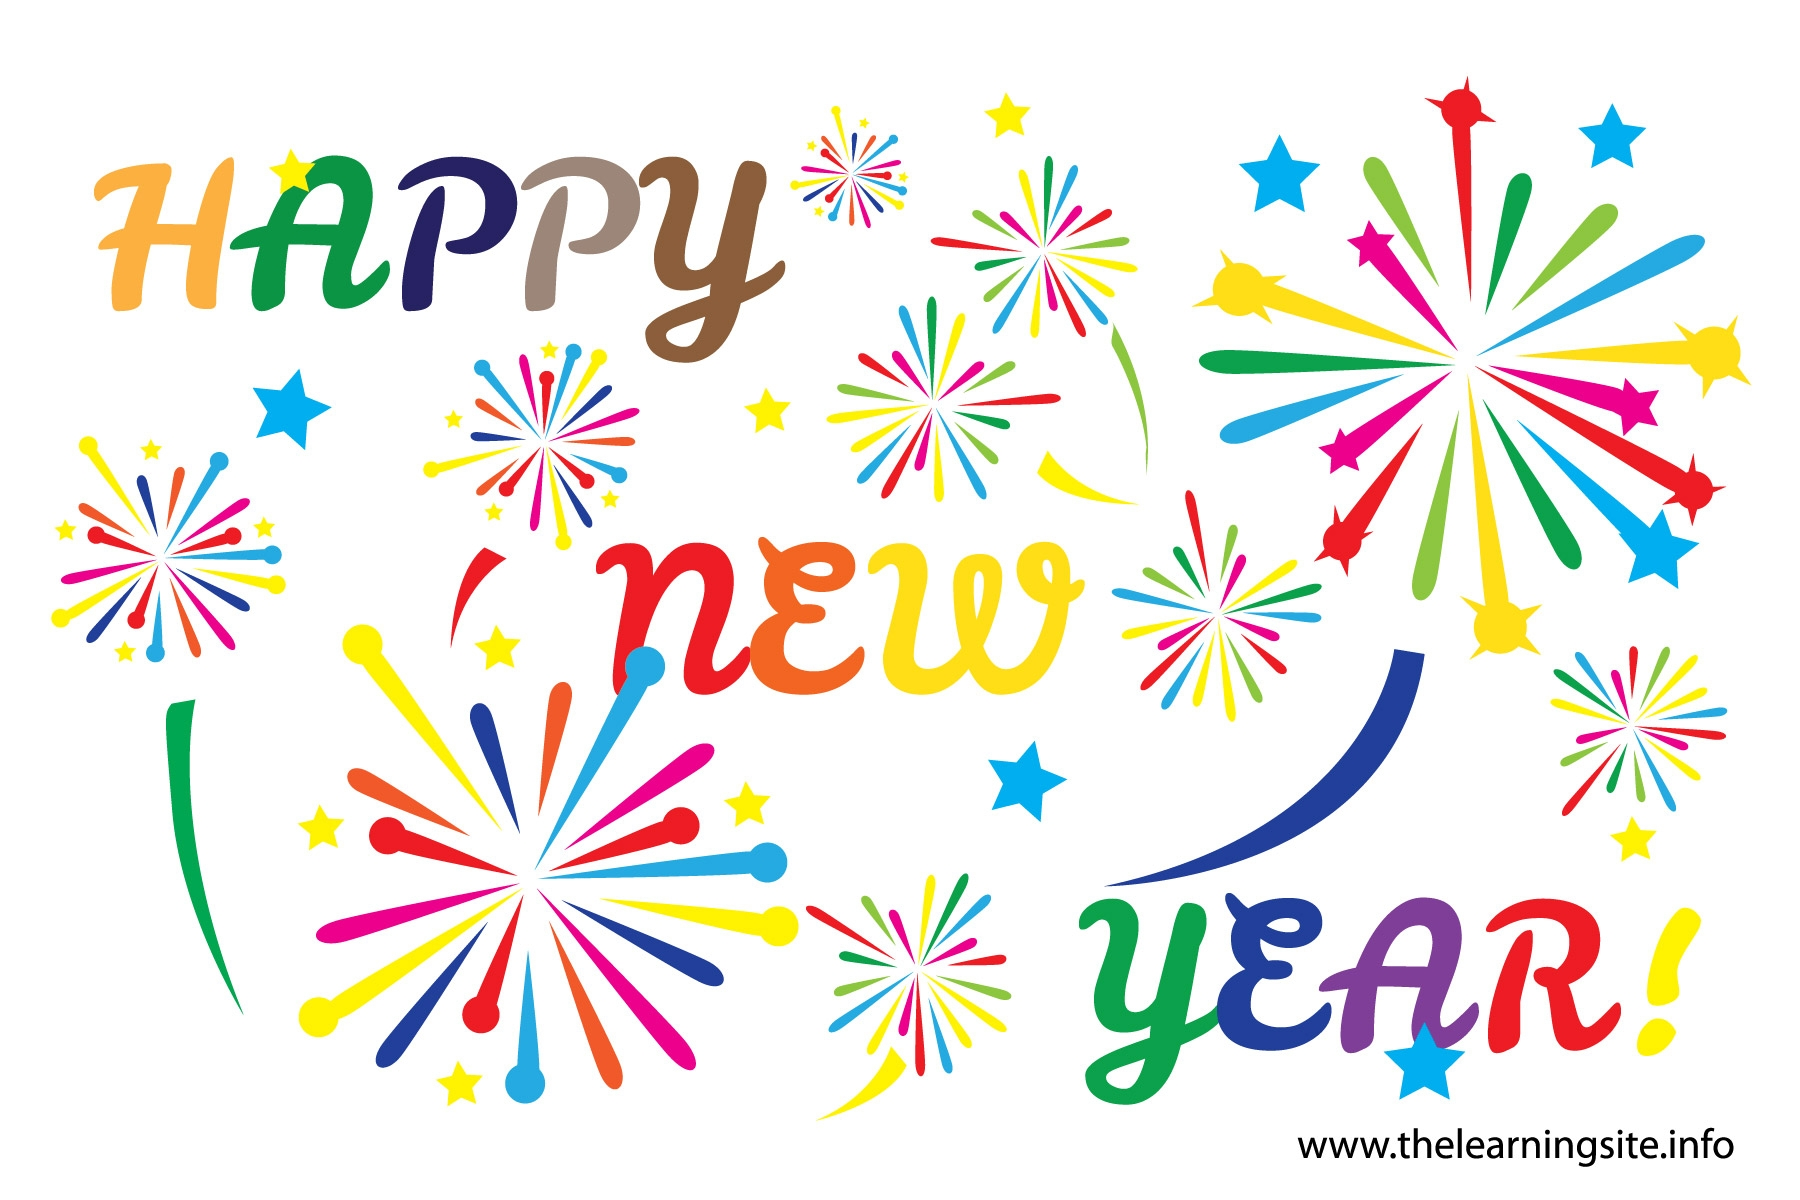 new year clipart - 12 - i - Happy new year clipart Clipartix